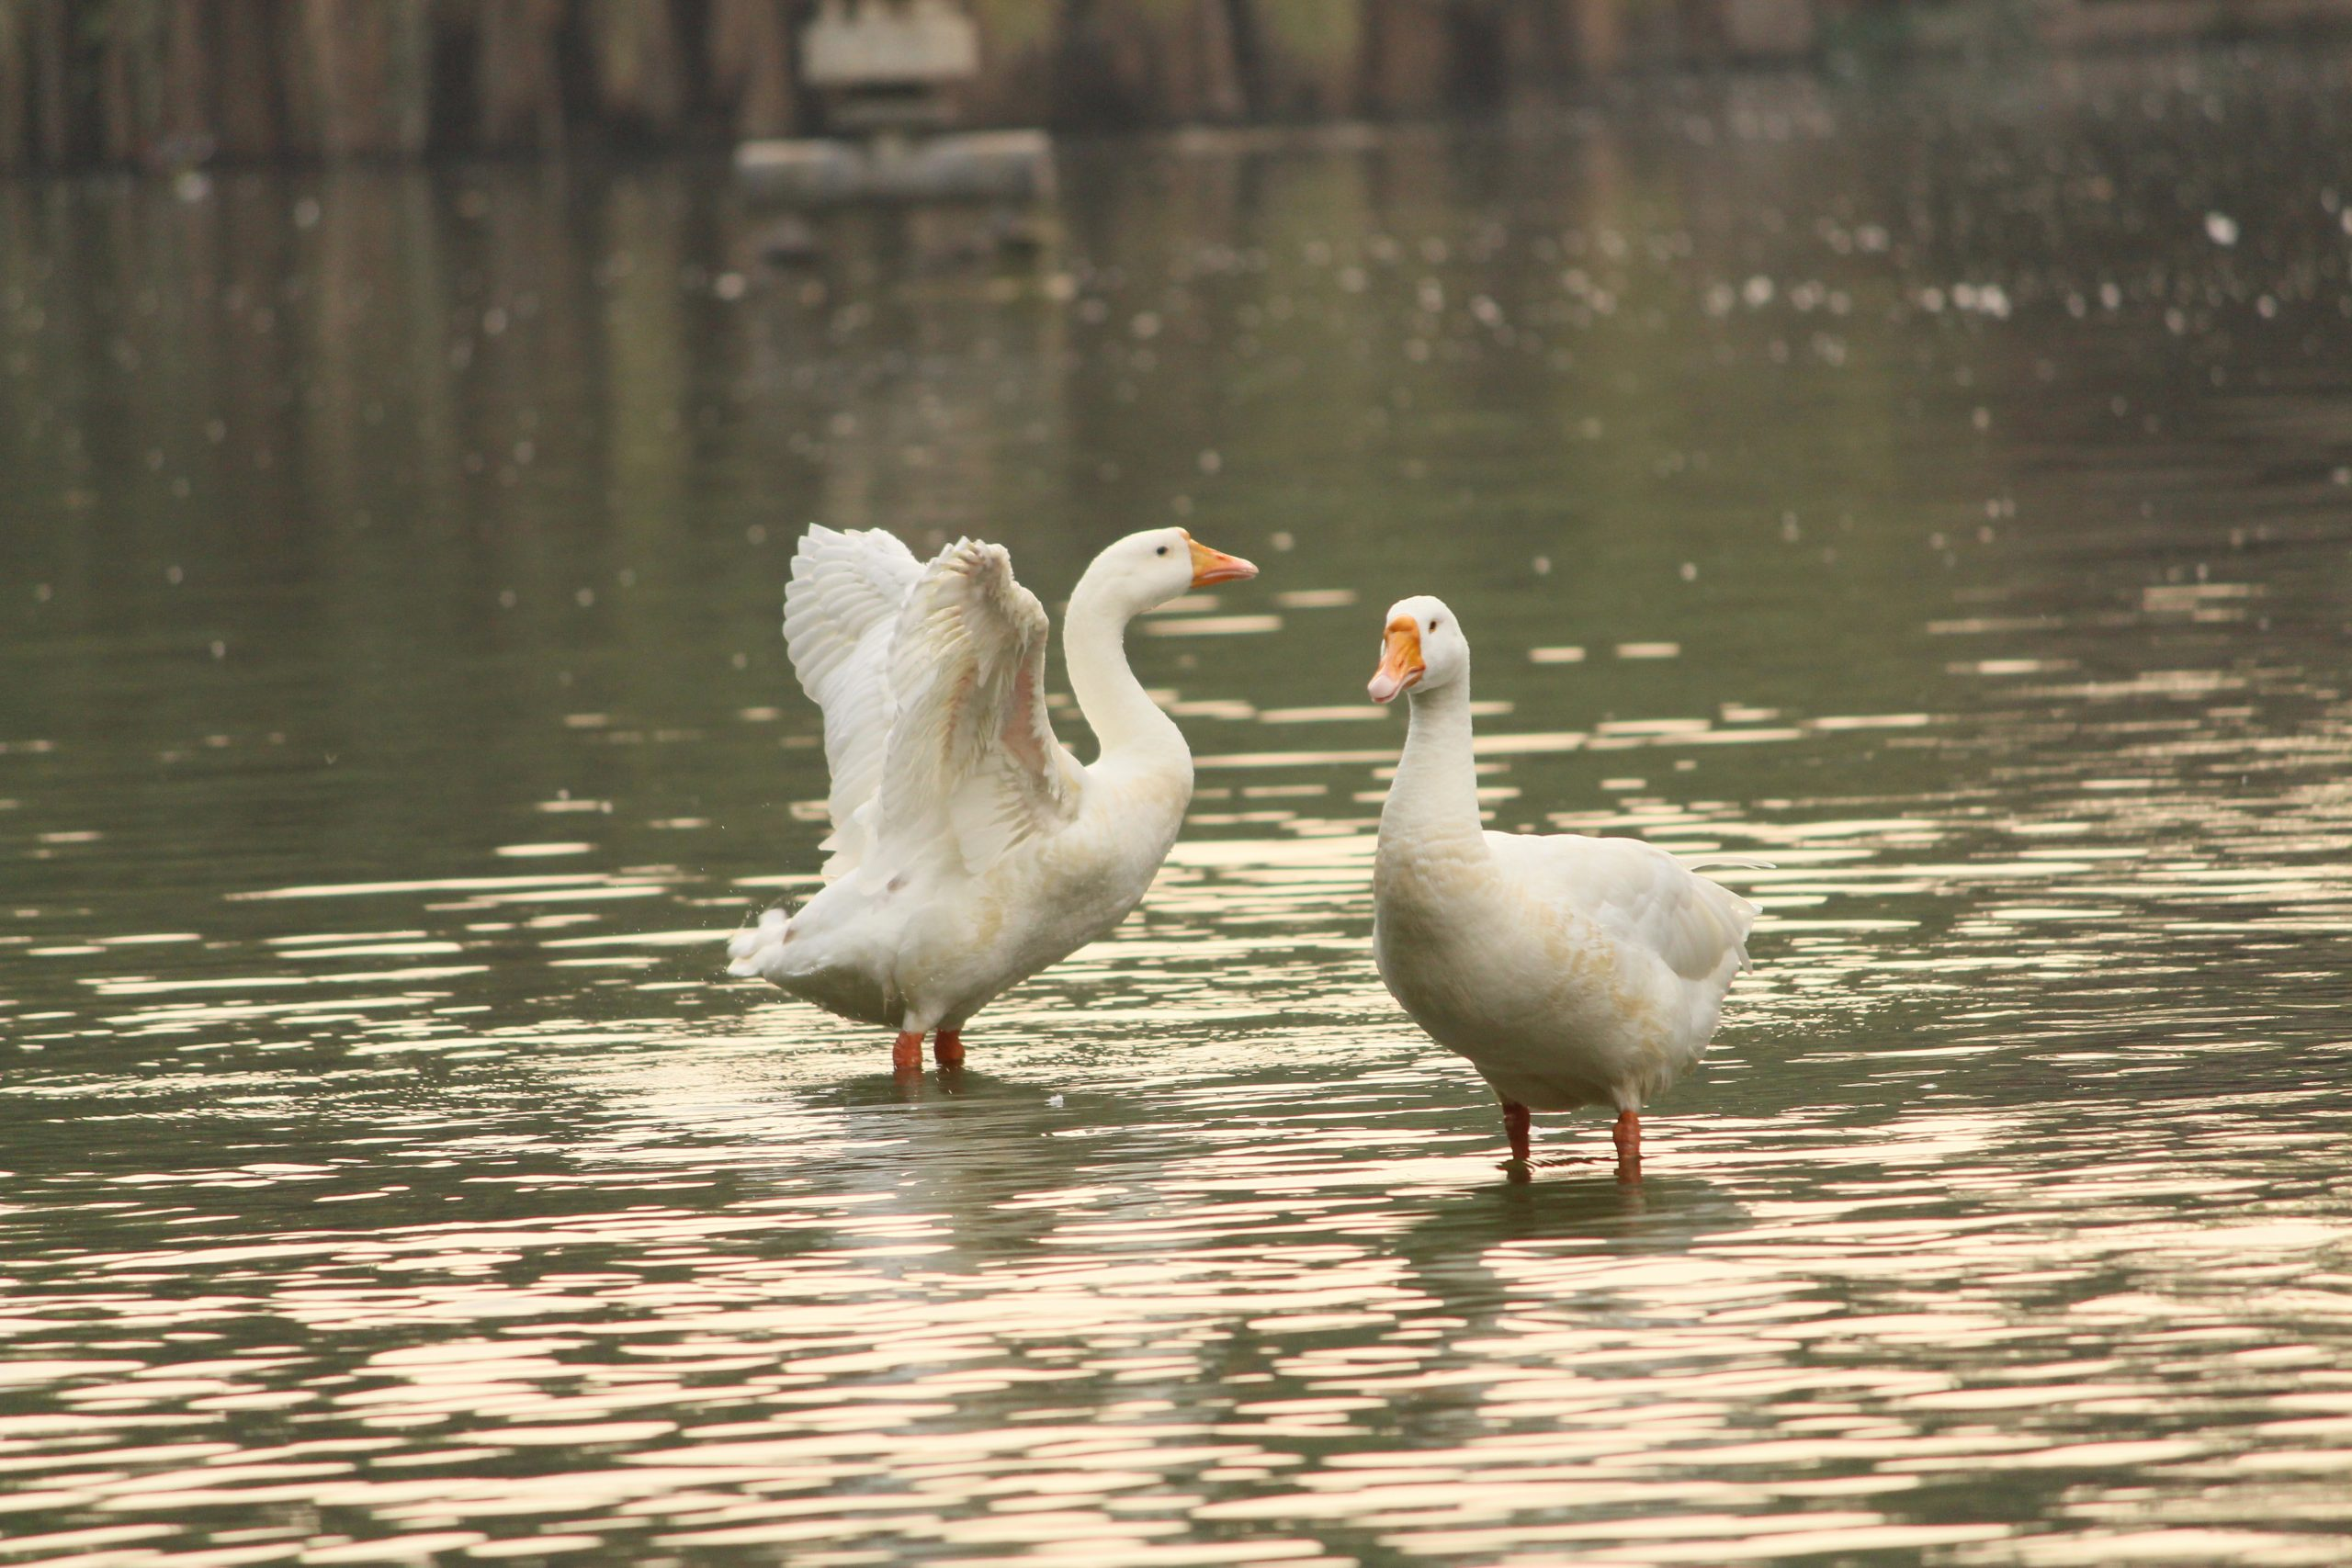 Two ducks swimming and waving their wings in water